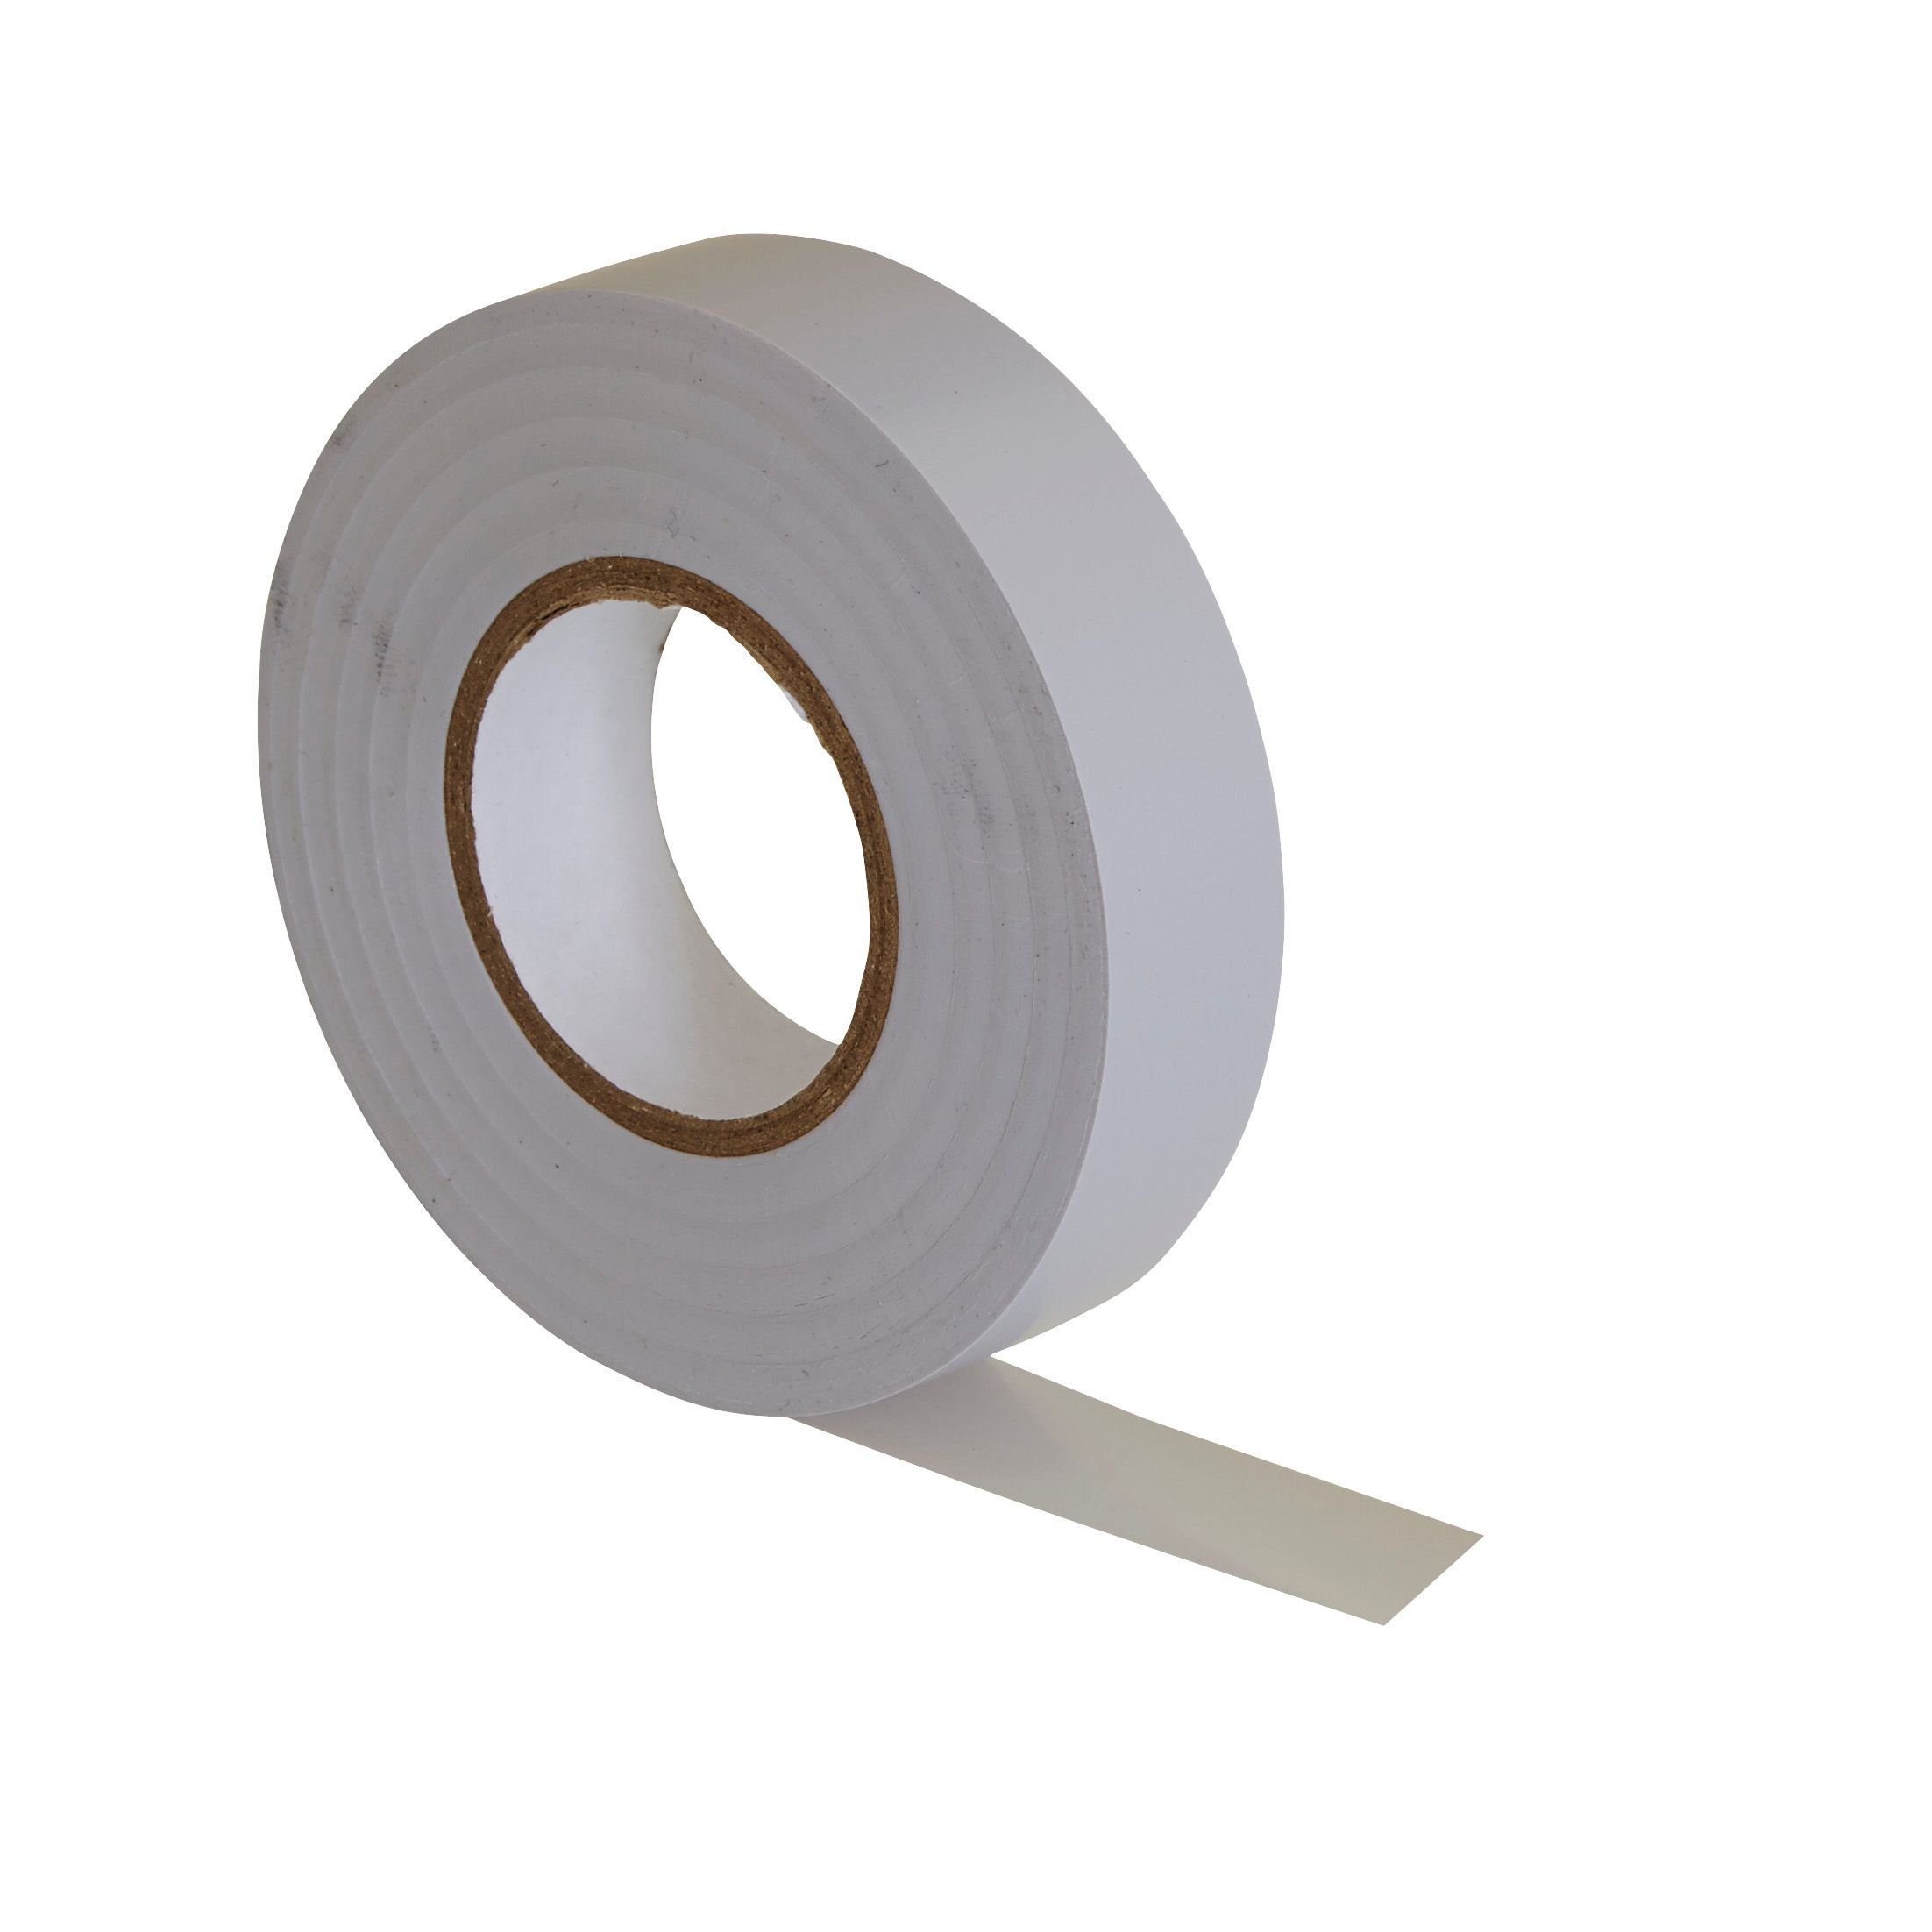 b q white insulation tape l 33m w 19mm departments. Black Bedroom Furniture Sets. Home Design Ideas